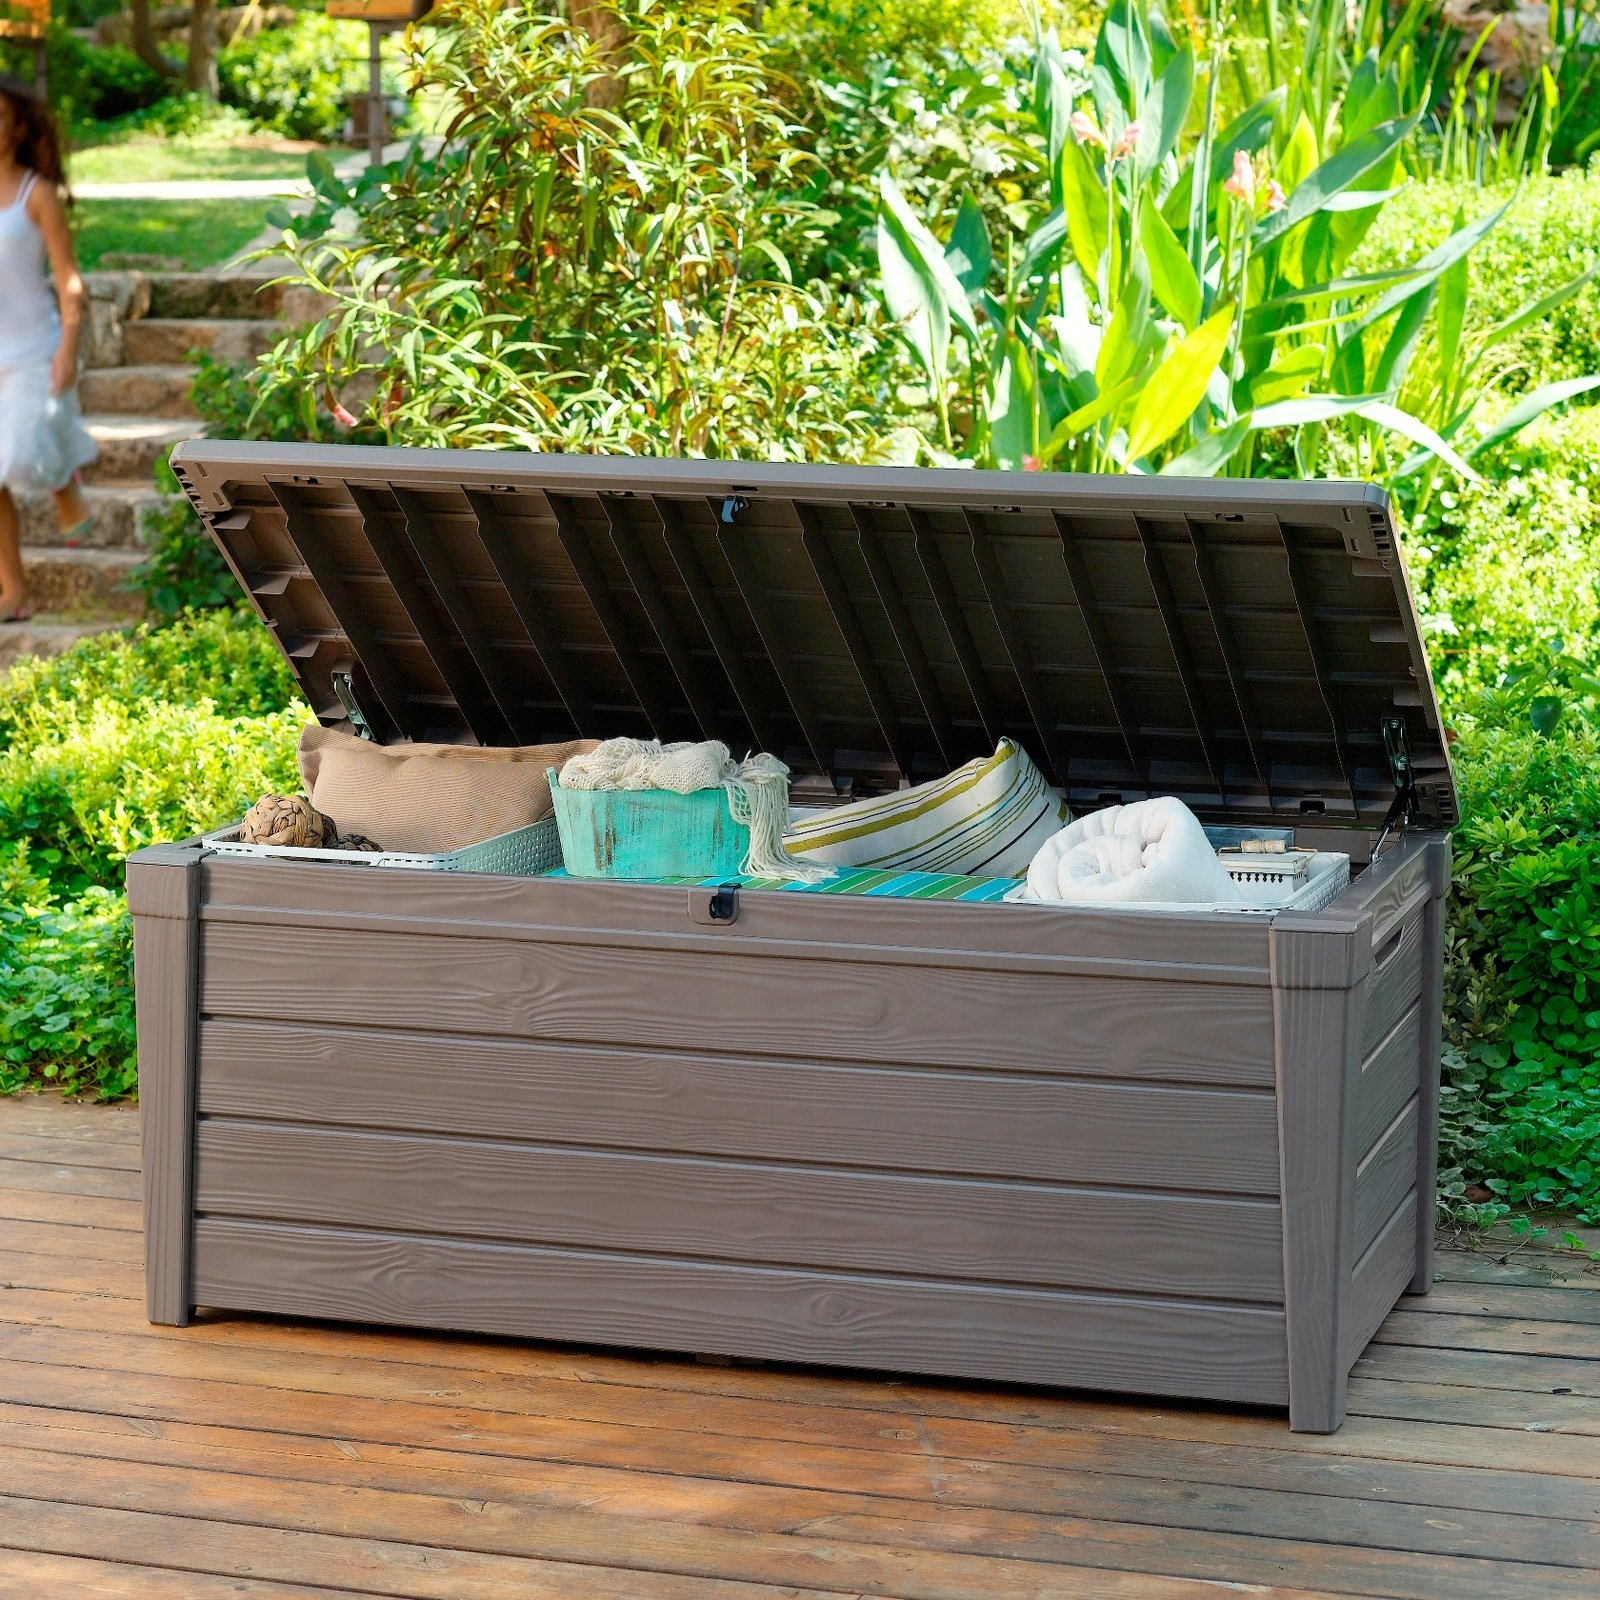 Image of: Storage Easy To Move Grey Deck Storage Box With Handles And Regarding Waterproof Outdoor Cushion Storage Bo Waterproof Outdoor Cushion Storage Box Idea